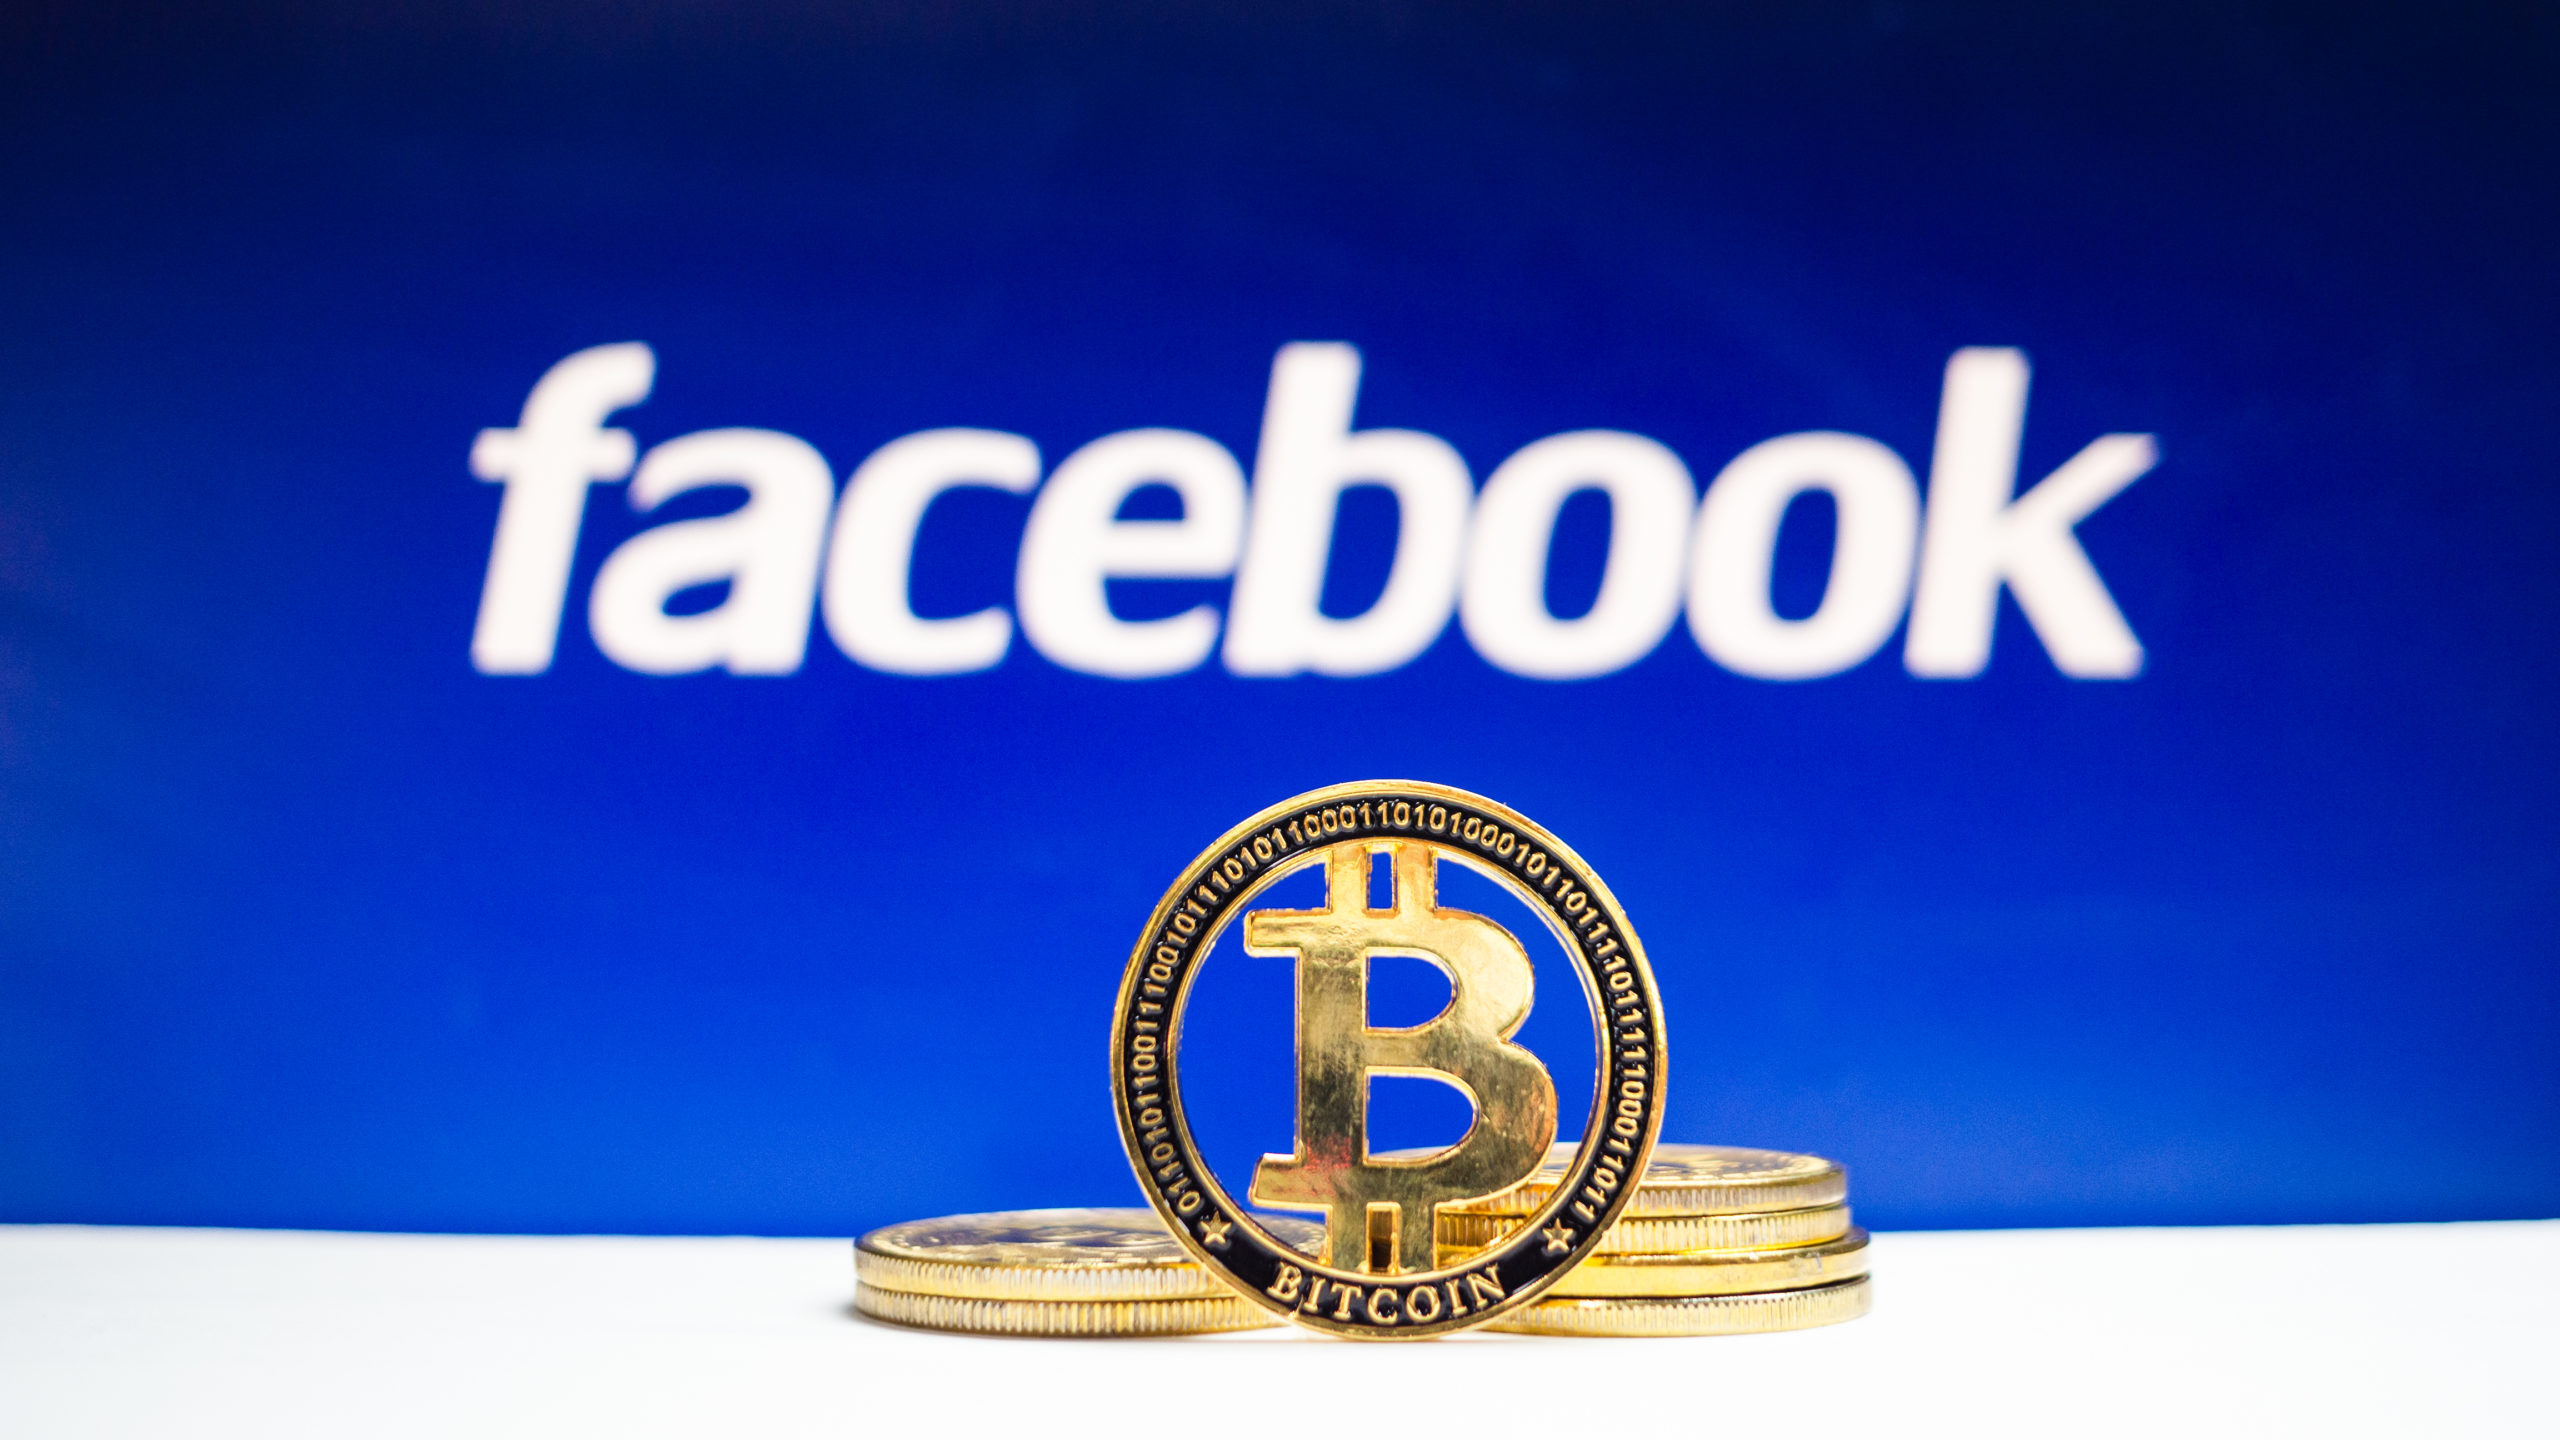 Facebook Releases Whitepaper of Upcoming Payment Service Libra